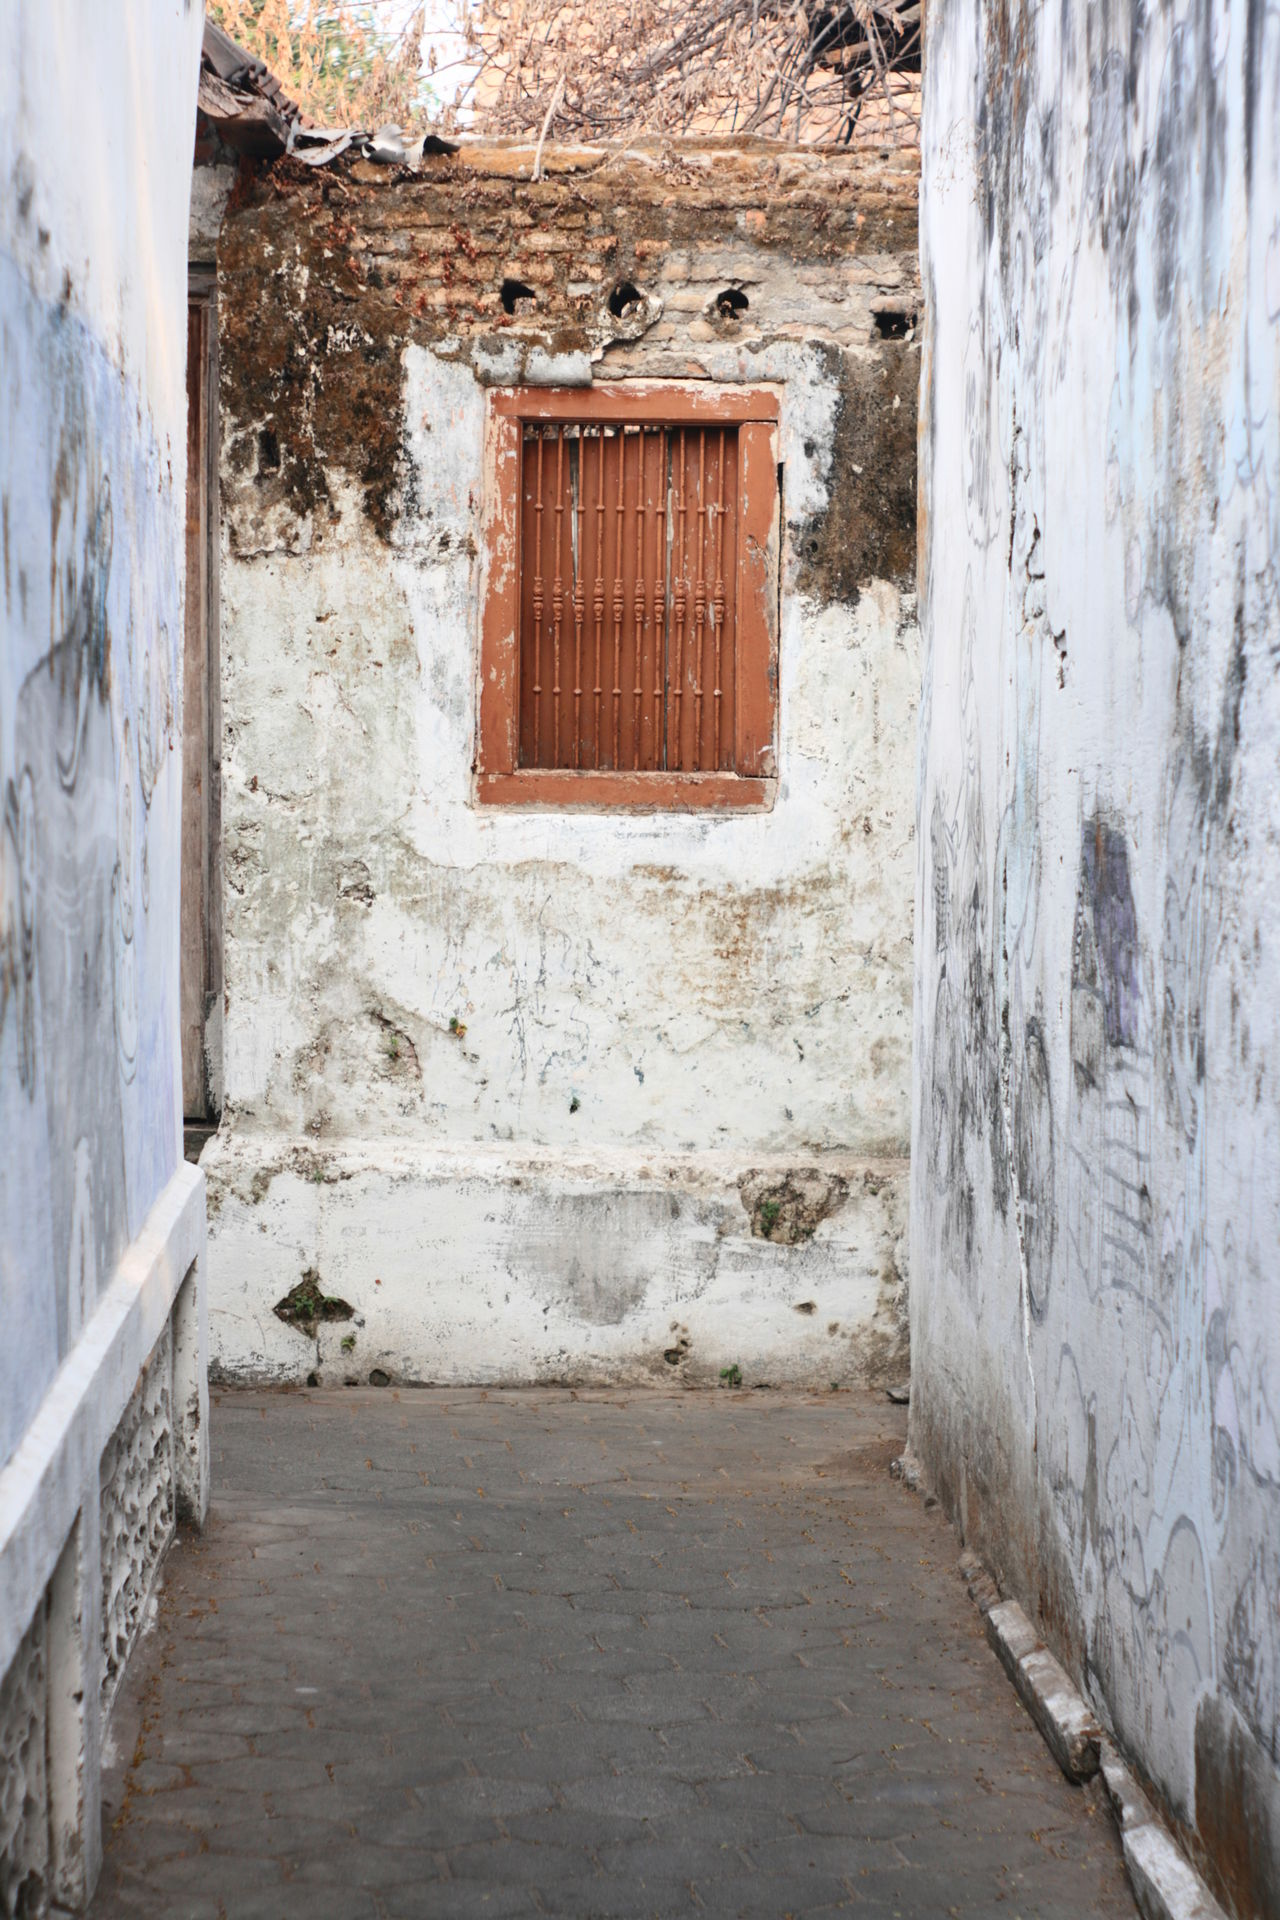 window in kota gede Architecture Building Exterior Built Structure Day House No People Old Old Buildings Outdoors Rustic Window